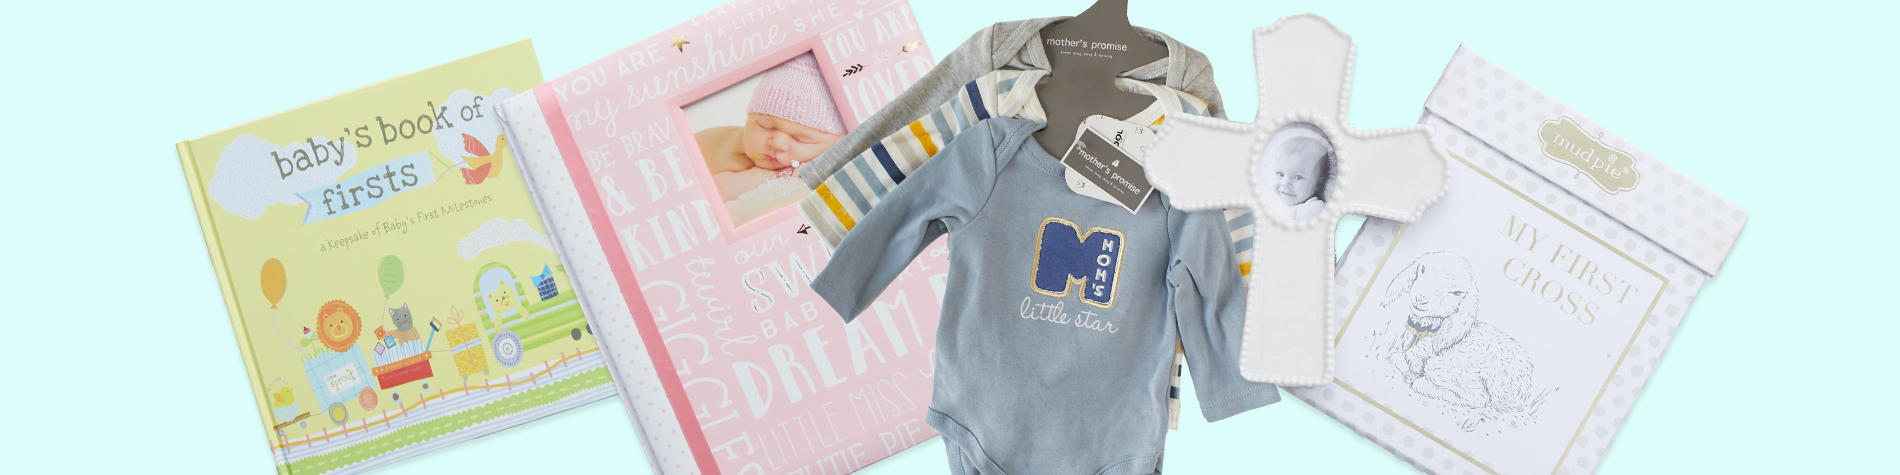 Quality baby gifts, clothing, toys and essentials.